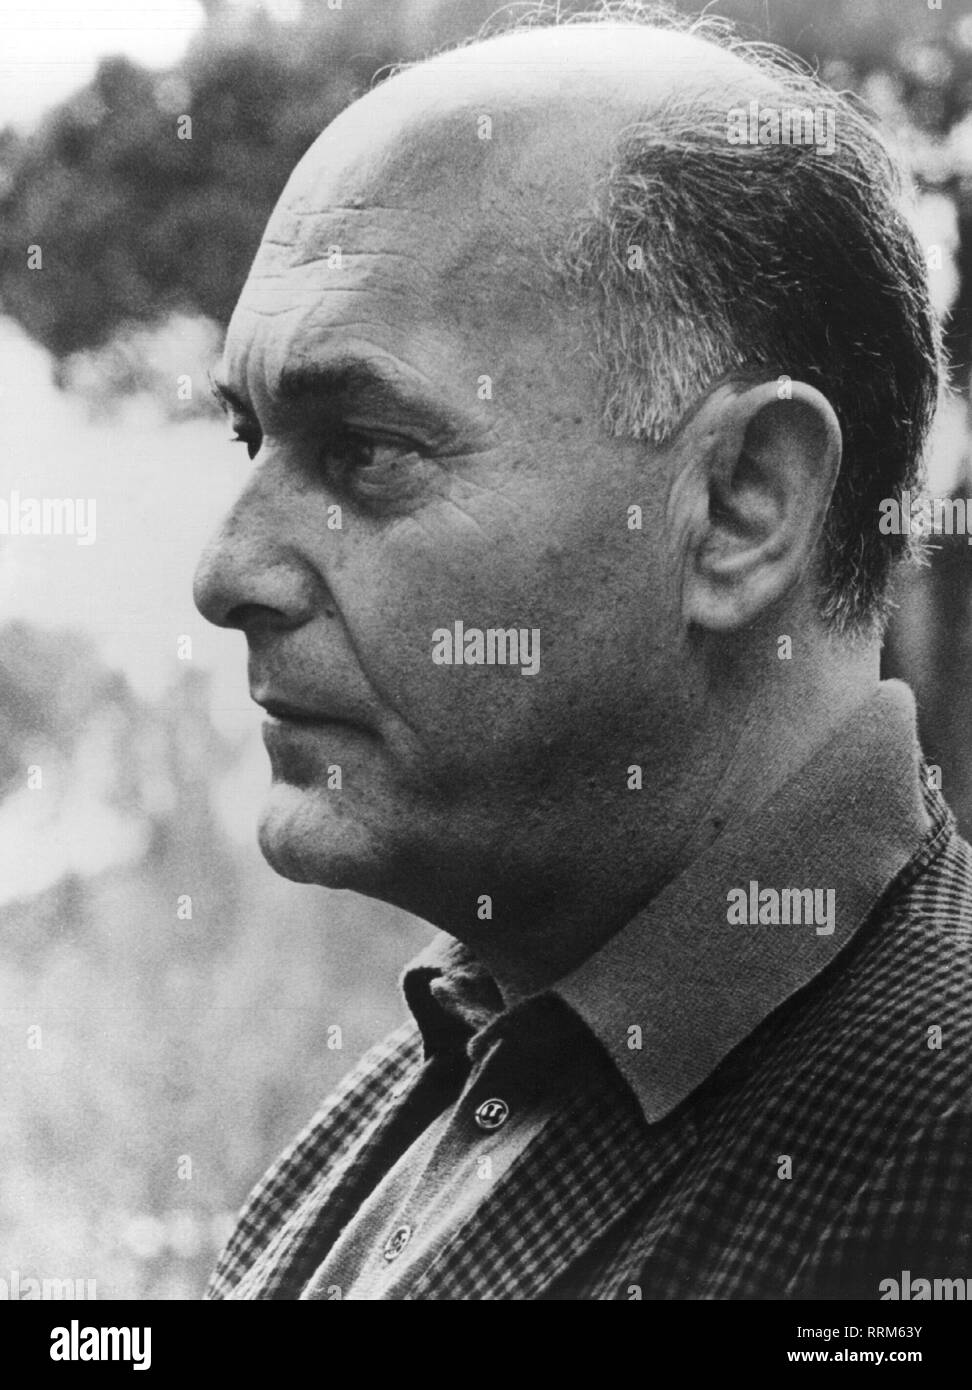 Solti, Georg, 21.10.1912 - 5.9.1997, British conductor of Hungarian origin, portrait, late 1960s,, Additional-Rights-Clearance-Info-Not-Available - Stock Image